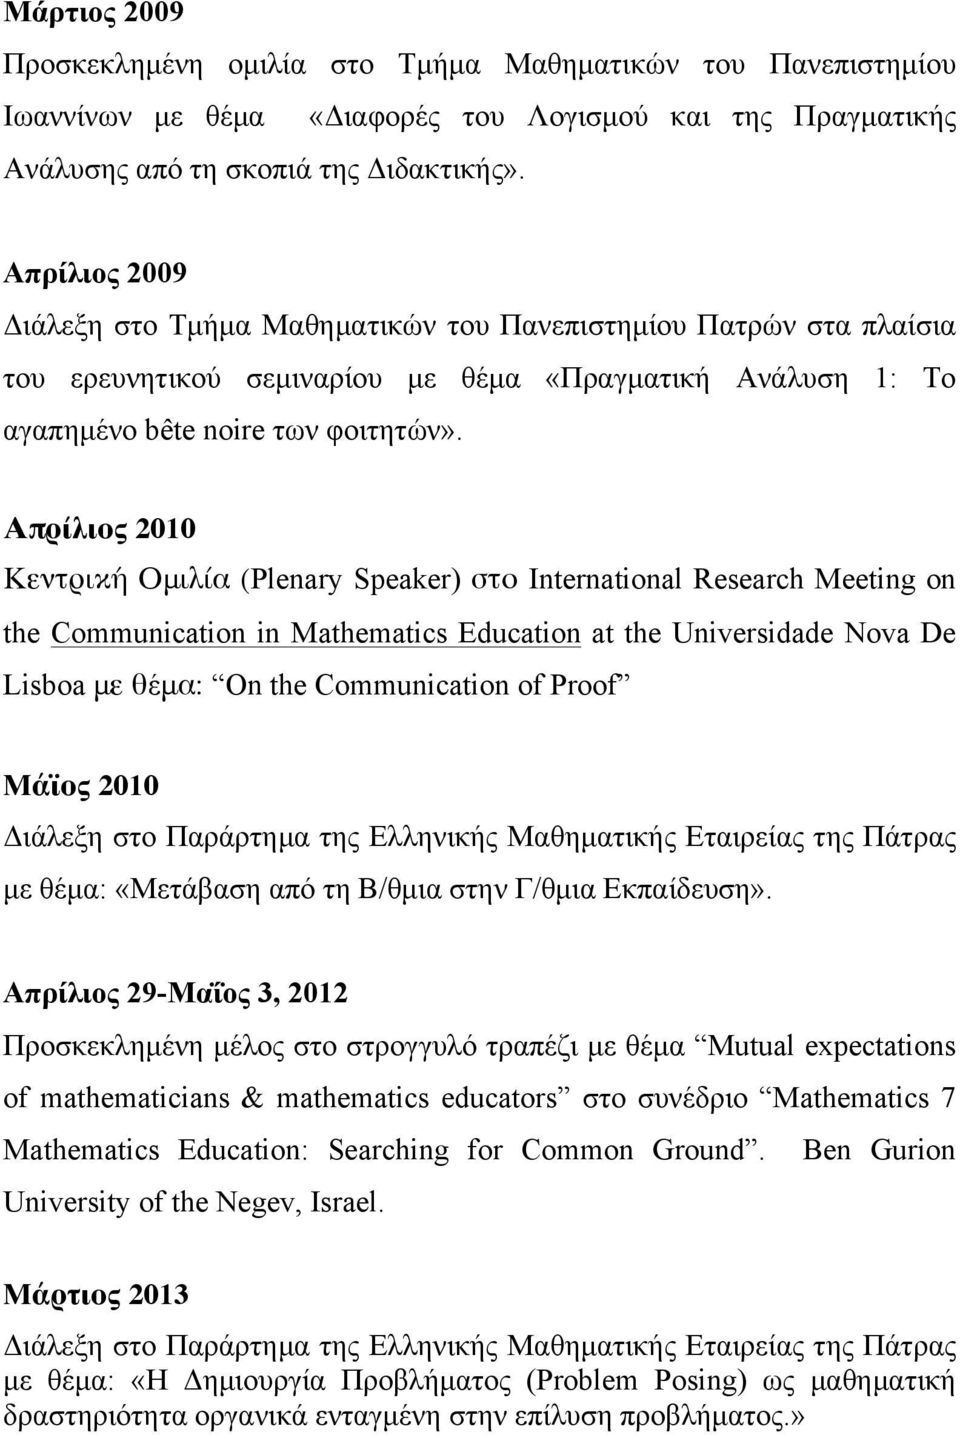 Απρίλιος 2010 Κεντρική Ομιλία (Plenary Speaker) στο International Research Meeting on the Communication in Mathematics Education at the Universidade Nova De Lisboa με θέμα: On the Communication of